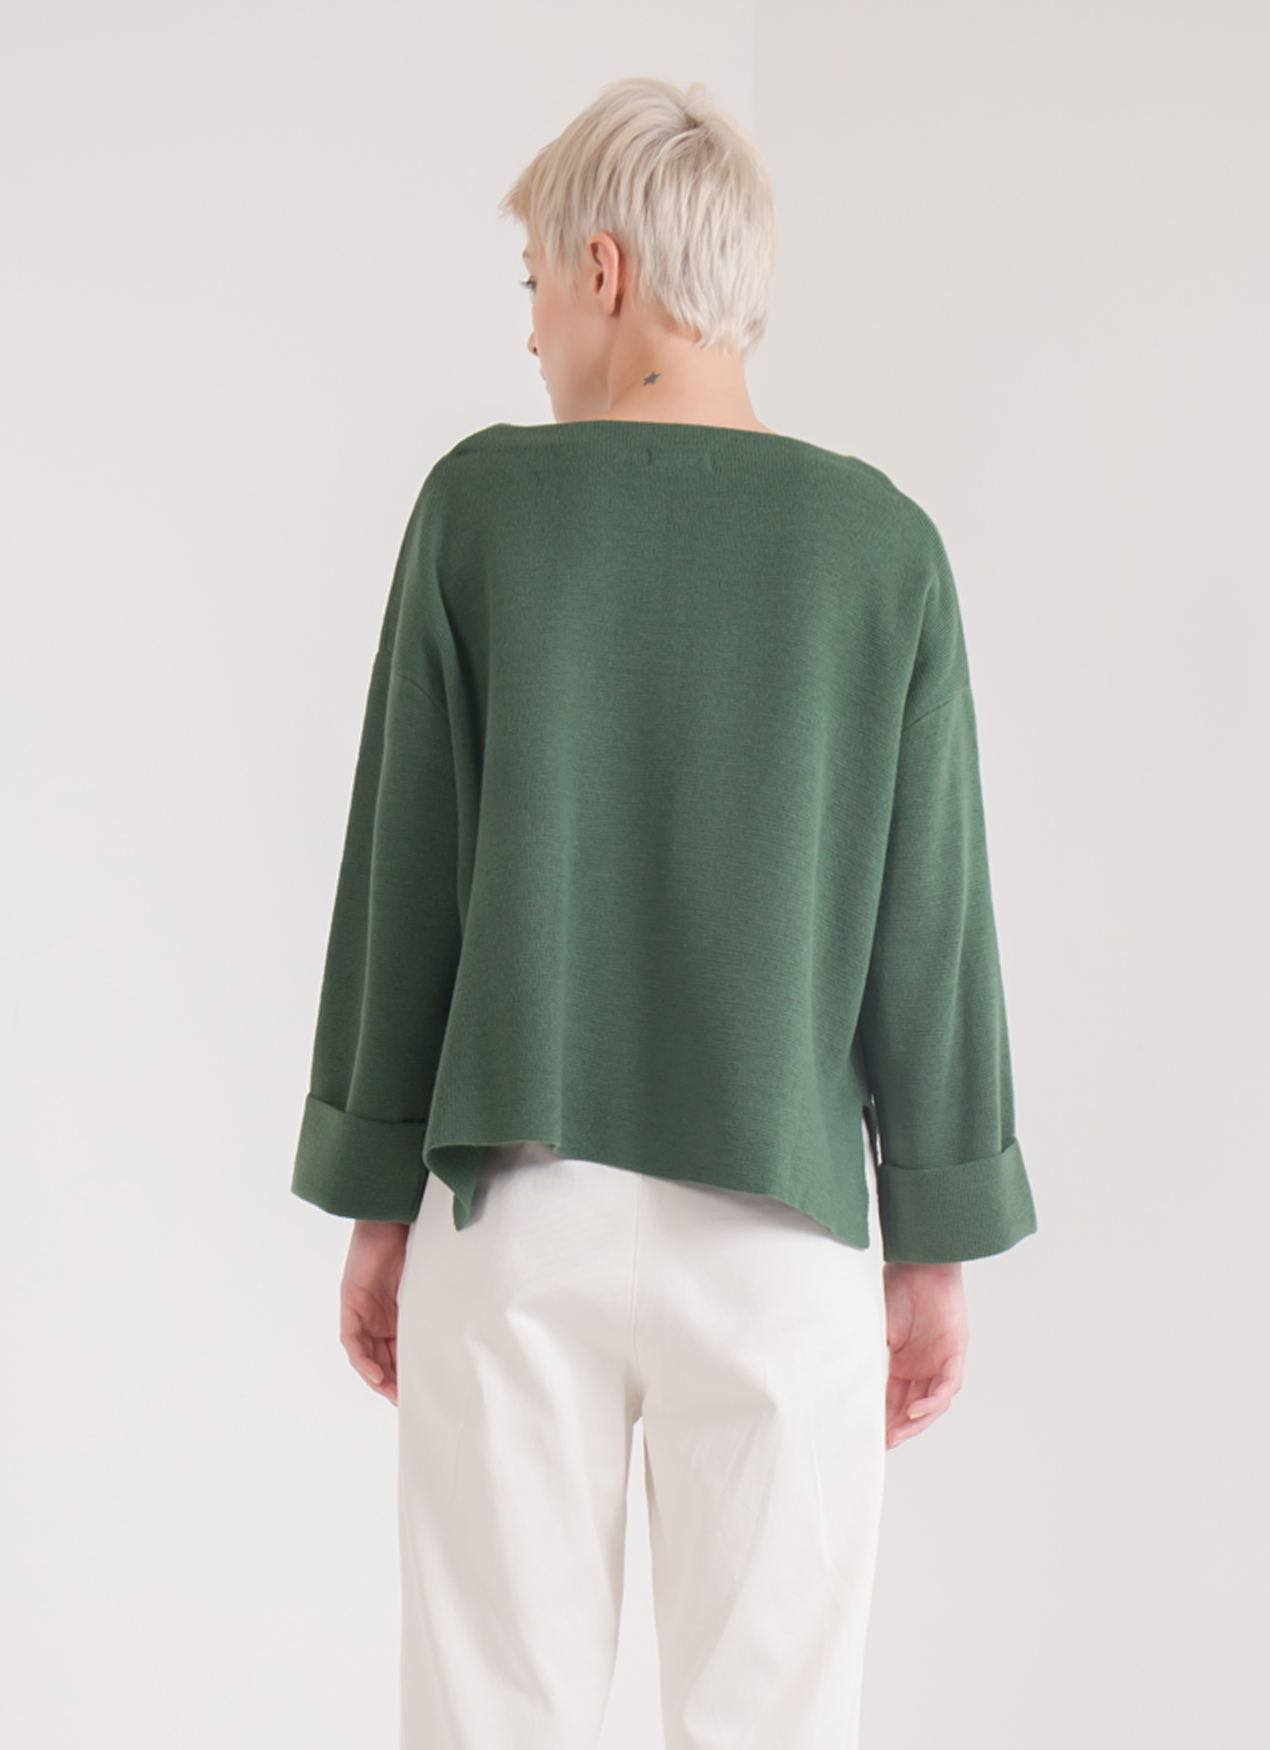 Earth, Music & Ecology Tata Sweater - Green